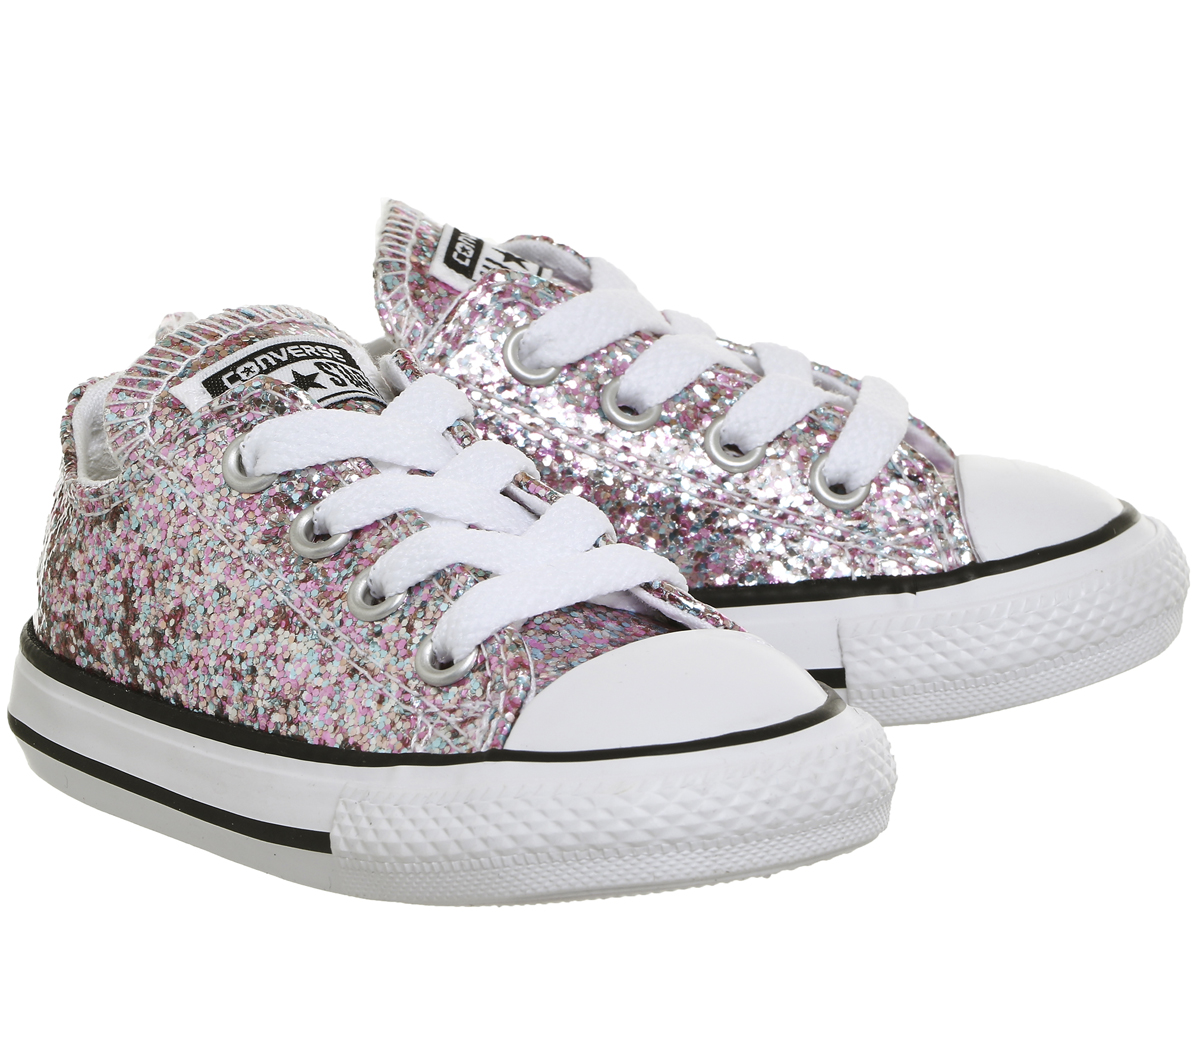 b6ac09f84ae Kids Converse All Star Low Infant VAPOUR PINK GLITTER EXCLUSIVE Kids ...